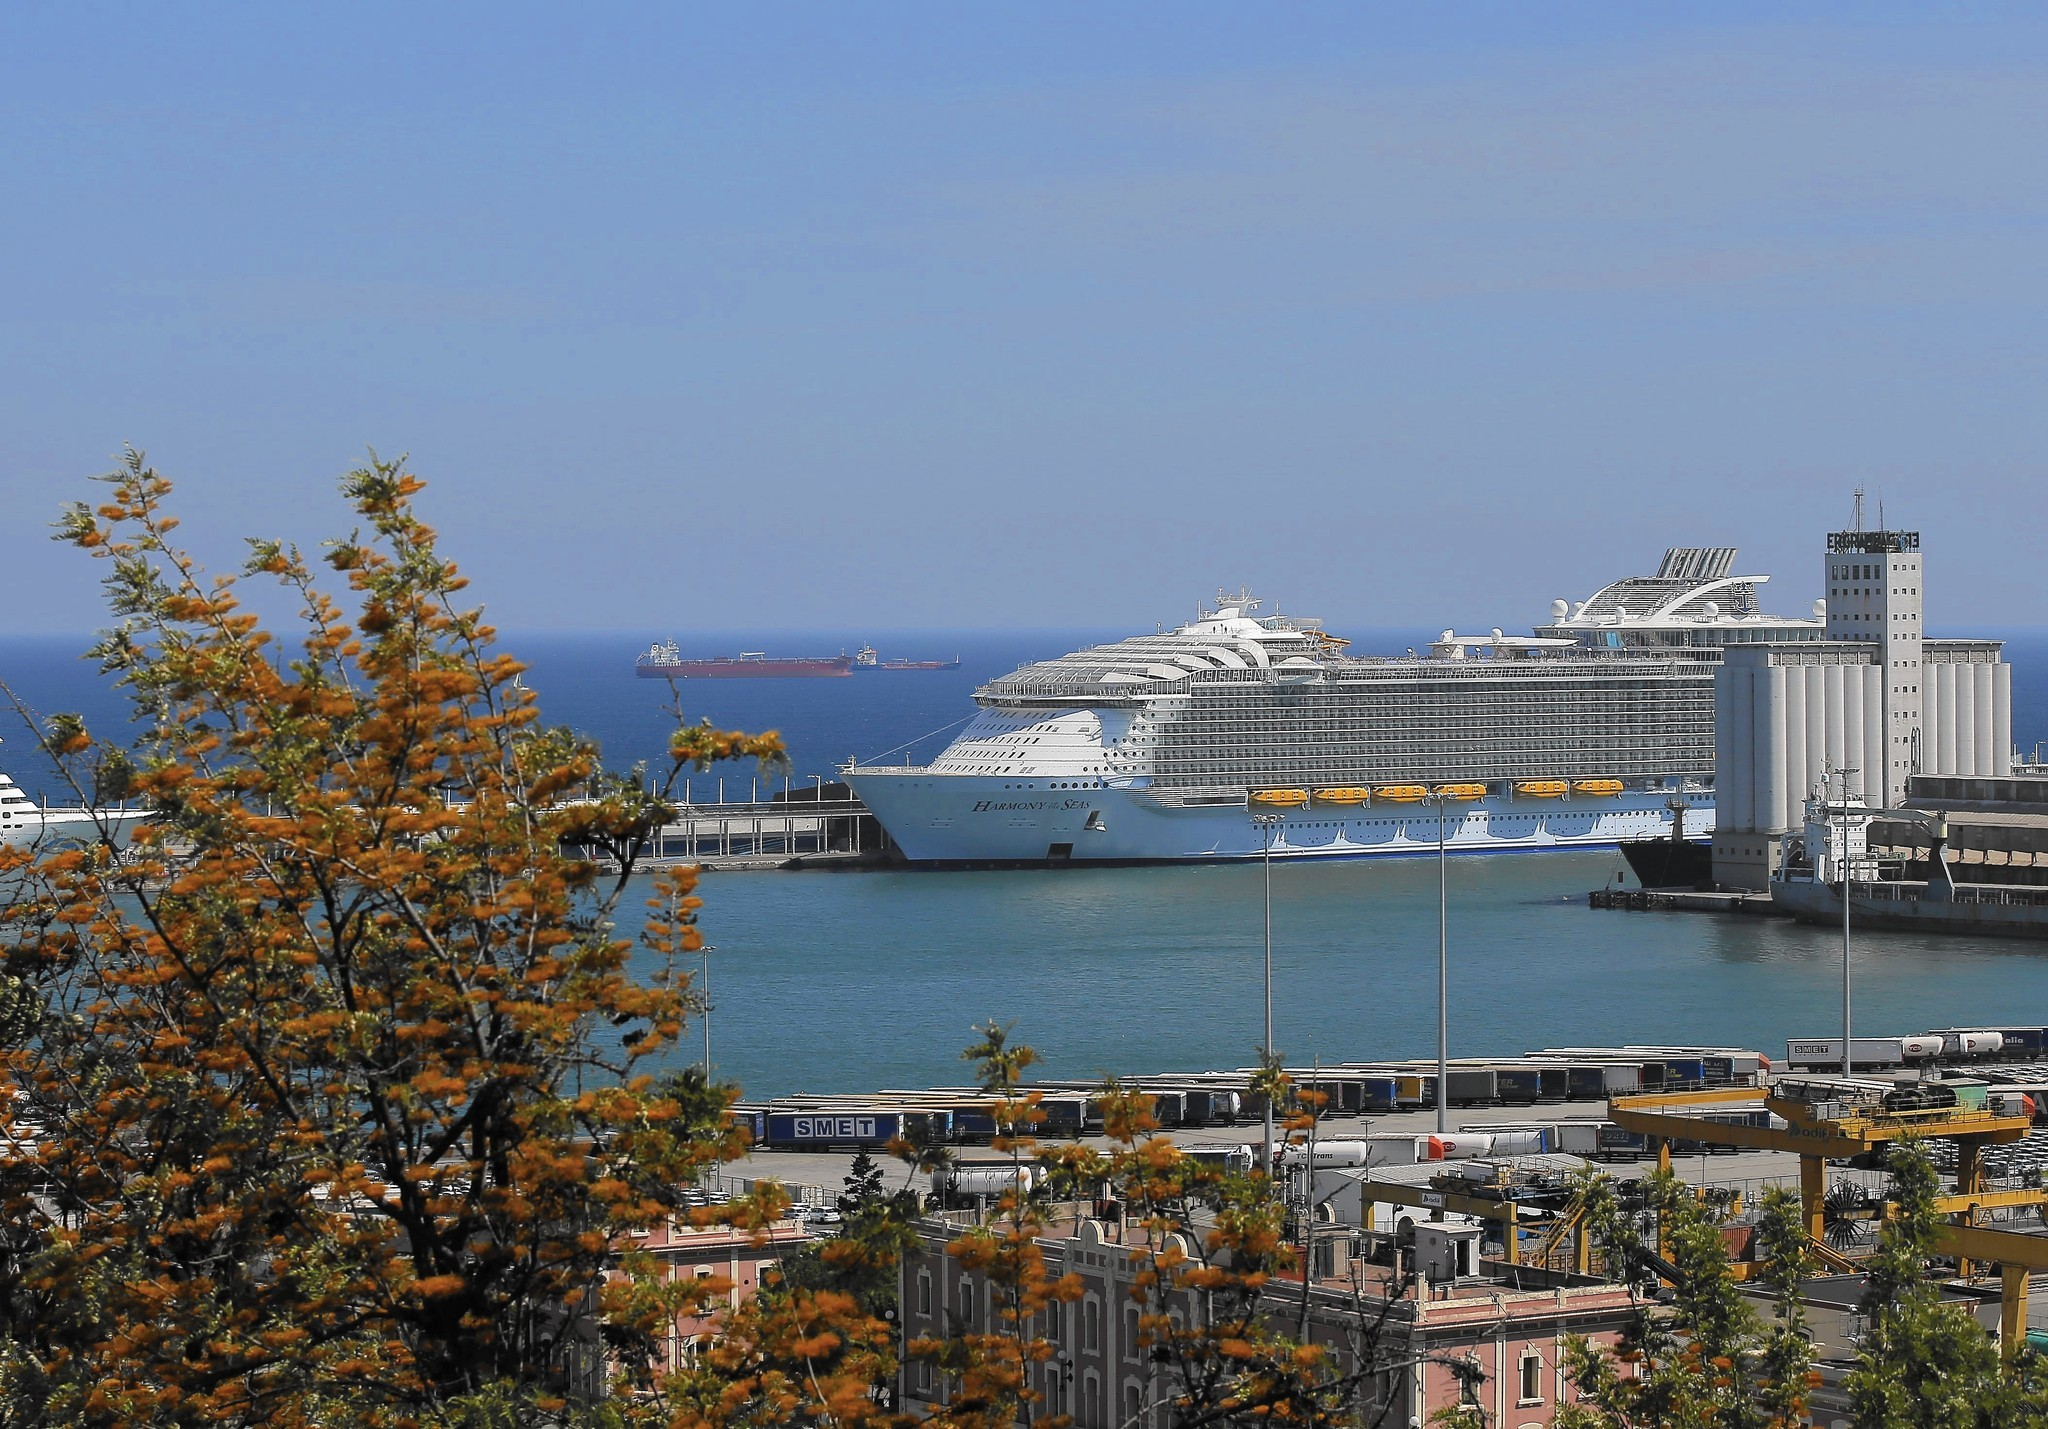 With spate of new cruise ships now sailing, what's next? - Orlando Sentinel